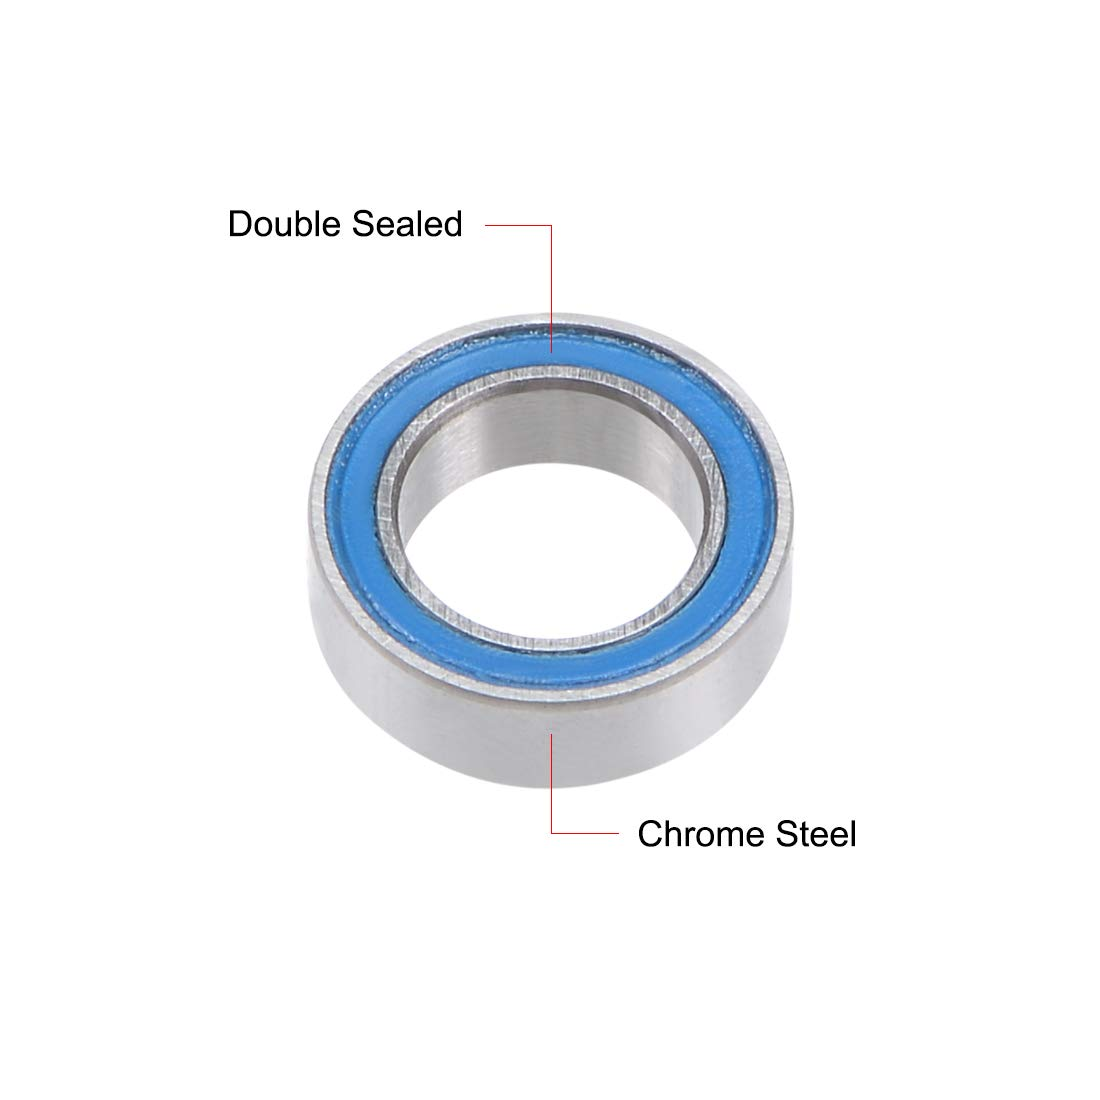 uxcell MR85-2RS Deep Groove Ball Bearing 5x8x2.5mm Double Sealed Chrome Steel Bearings 1-Pack